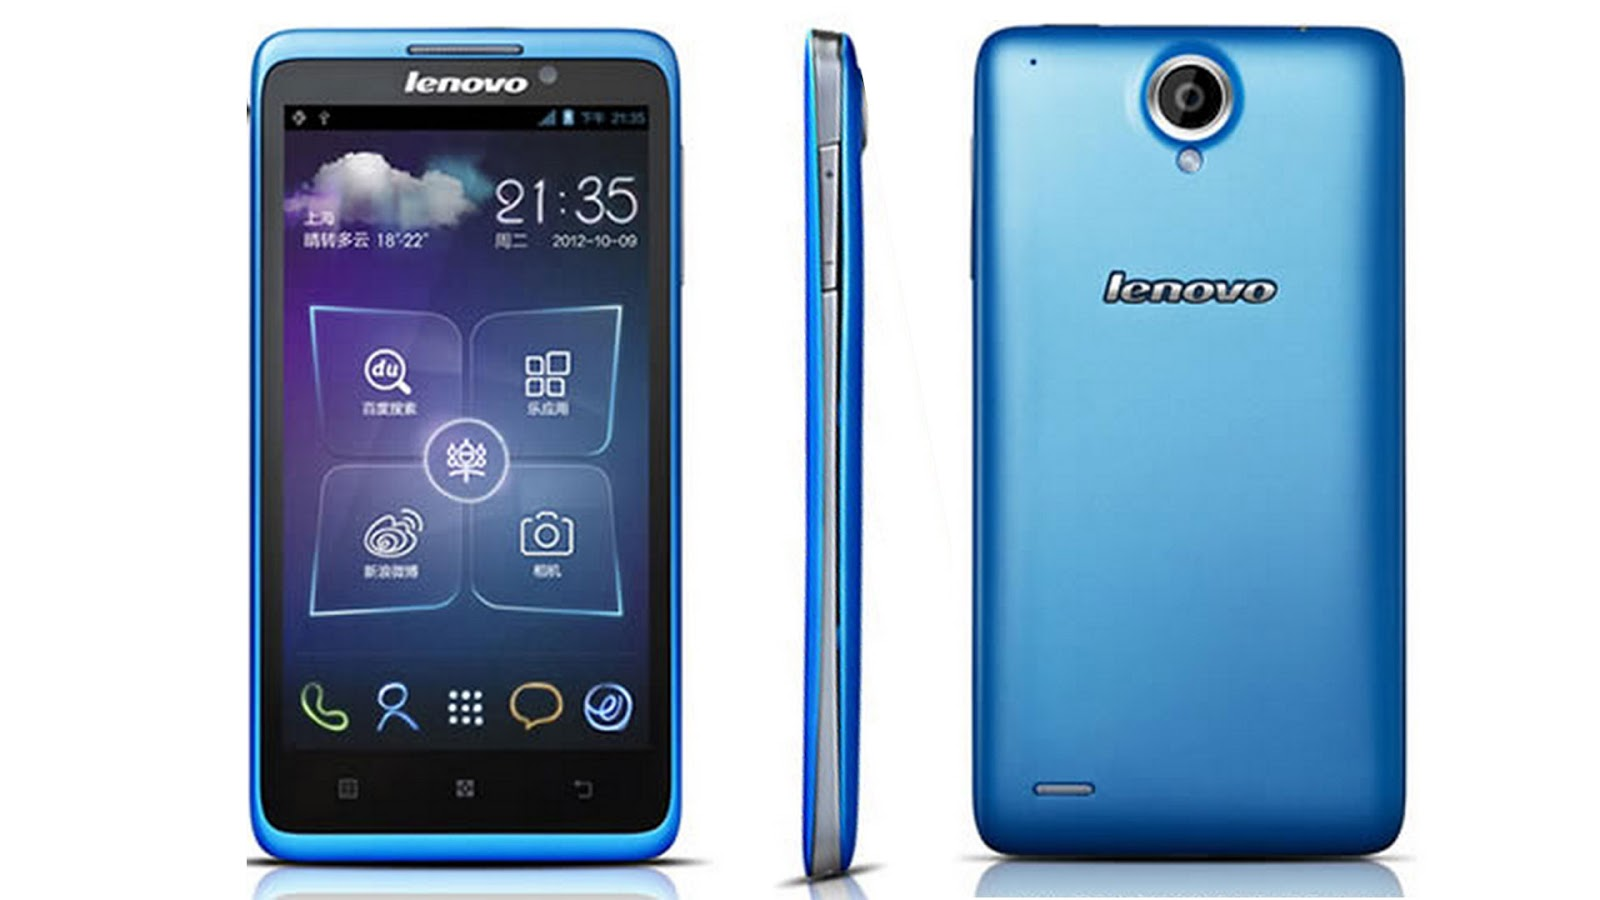 Phone Lenovo Android Phone Price mobile raptor lenovo s890 a really nice 5 inch android phone now 4 1 and gb of ram are substantial updates but what makes the worth considering despite much higher